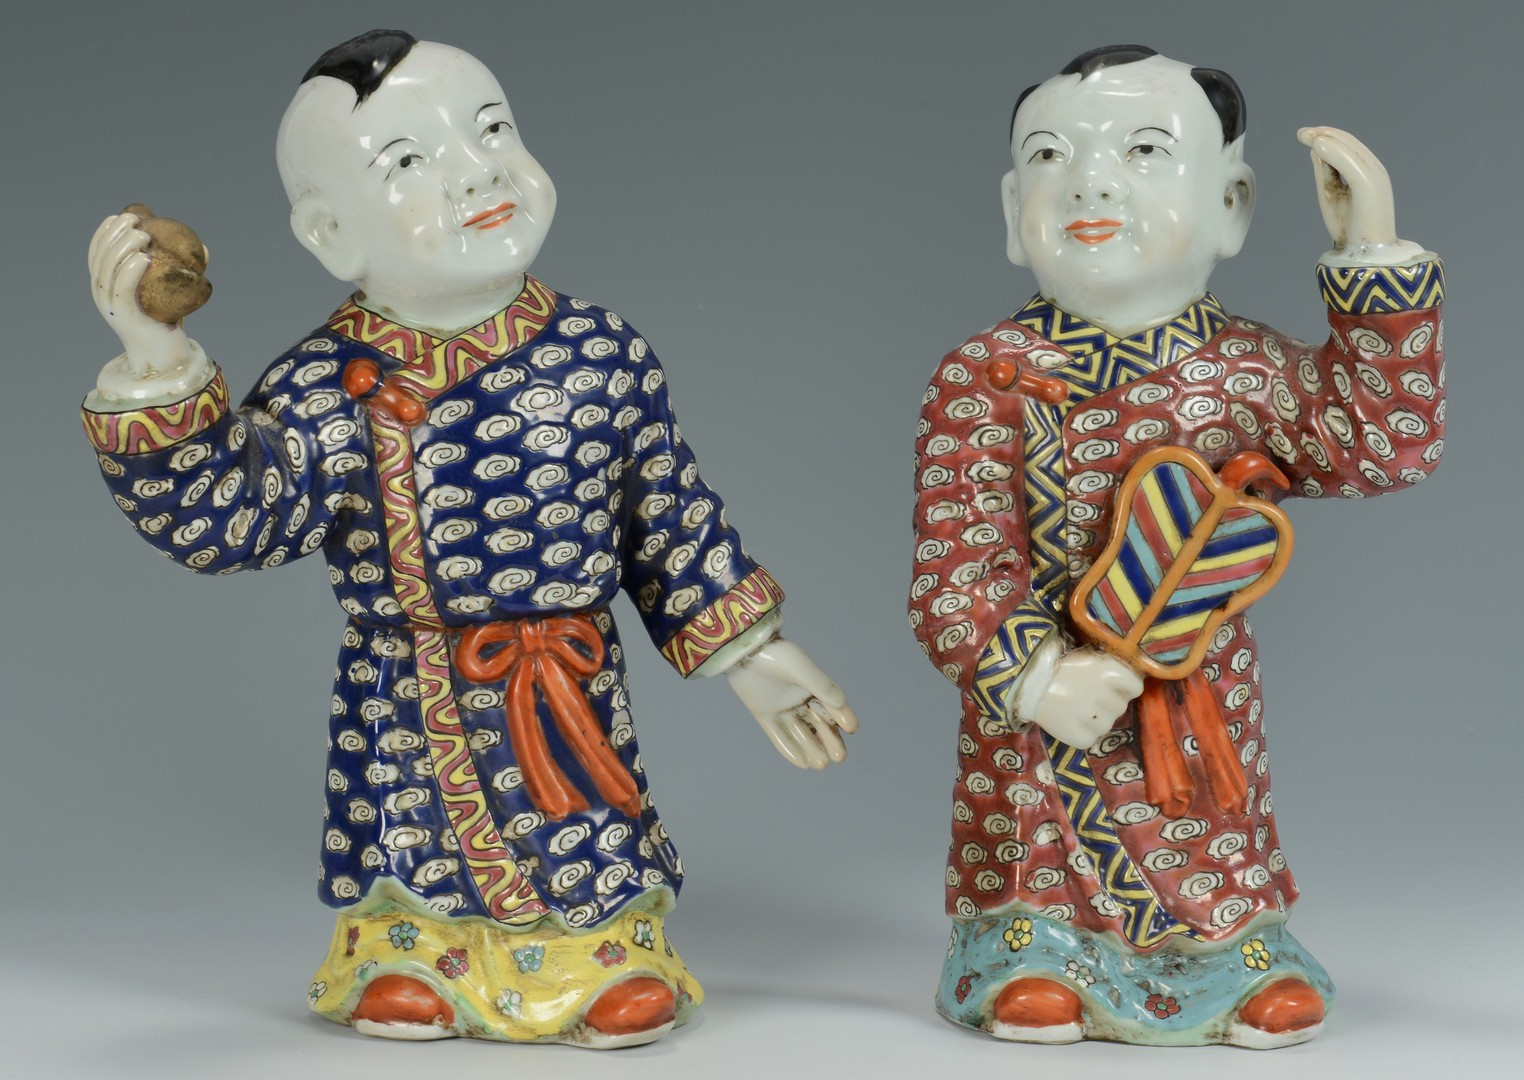 Lot 3383219: 4 Chinese Porcelain Figures